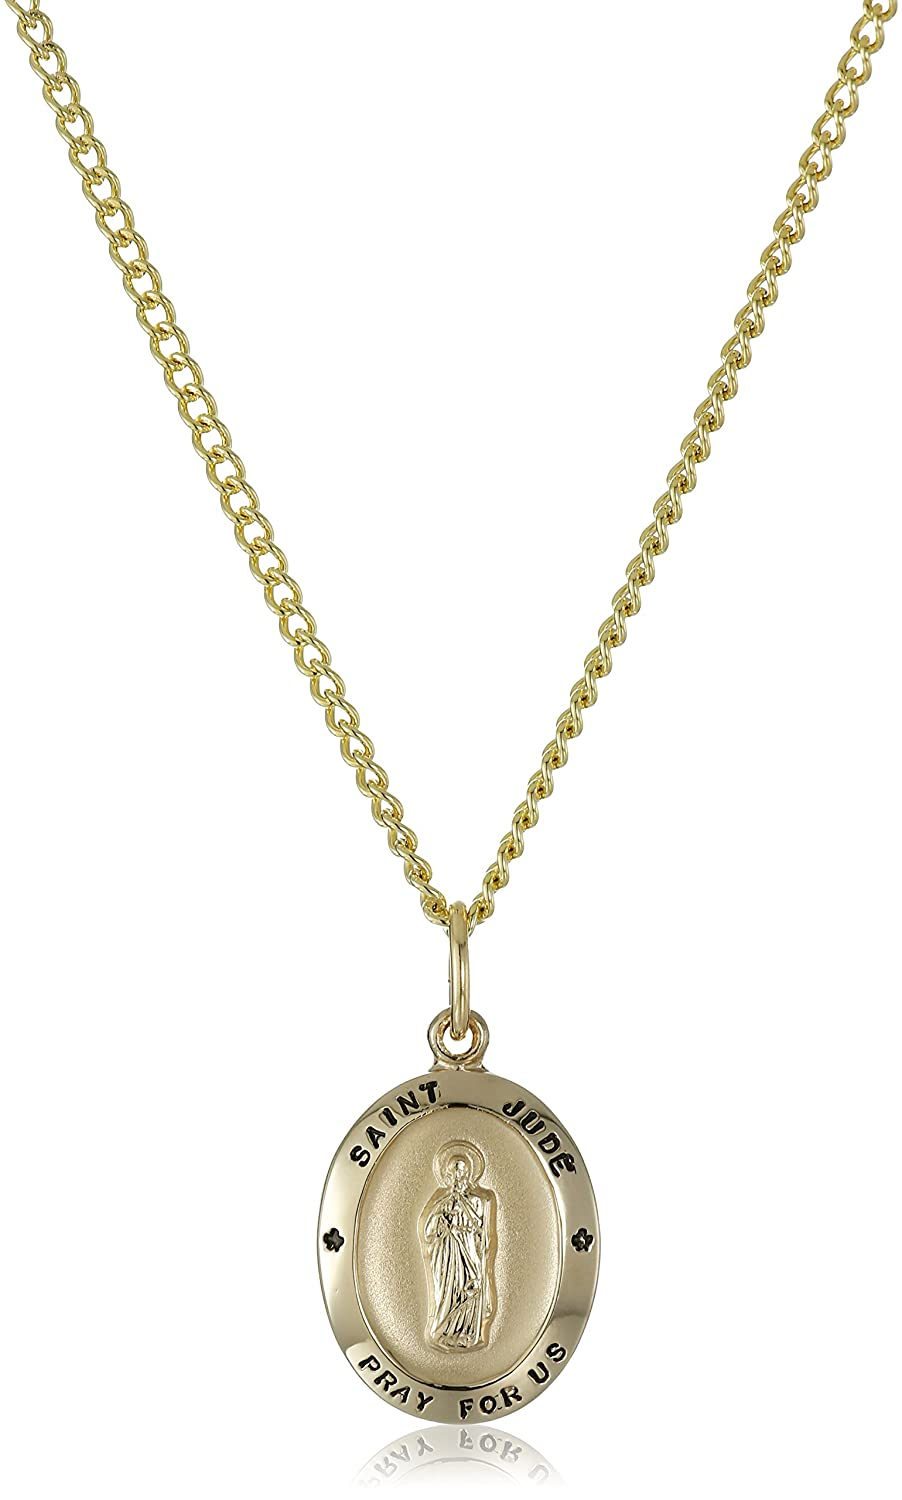 14k Gold Filled Oval Saint Jude Pendant Necklace with Stainless Steel Chain, 18' 18 AMZ403SC